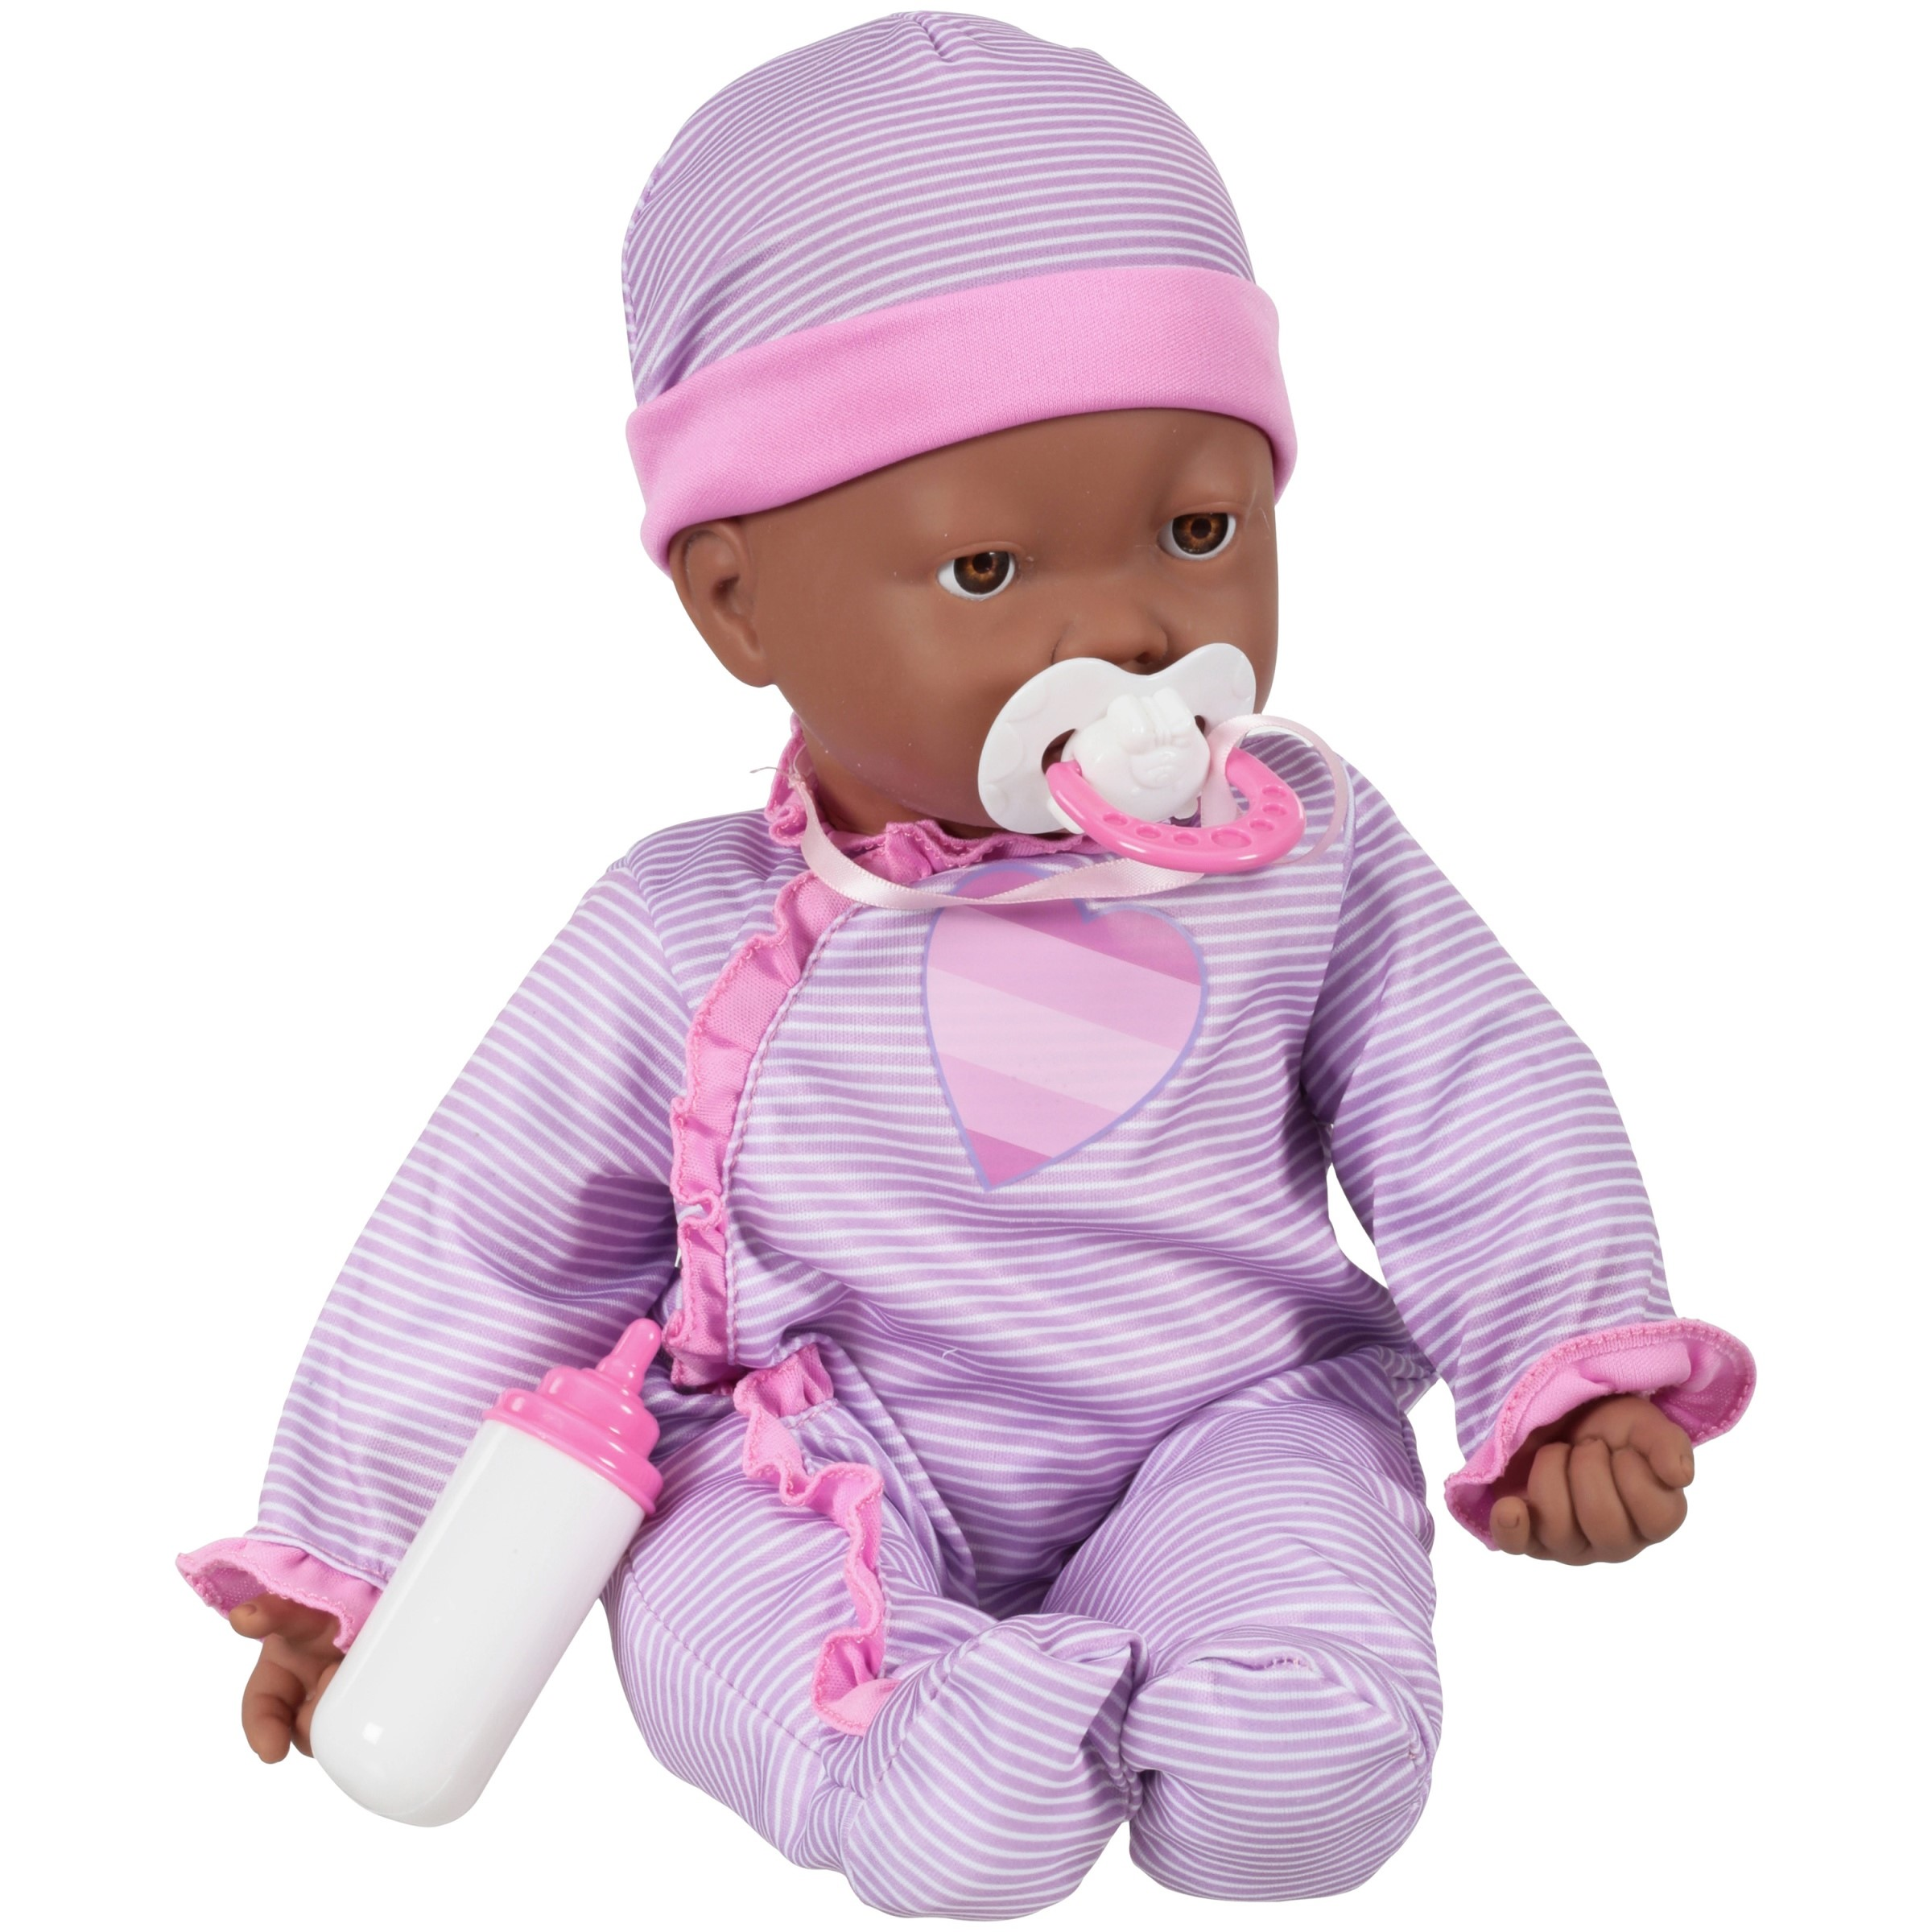 My sweet love 3-piece interactive baby doll set, designed for ages 3 and up